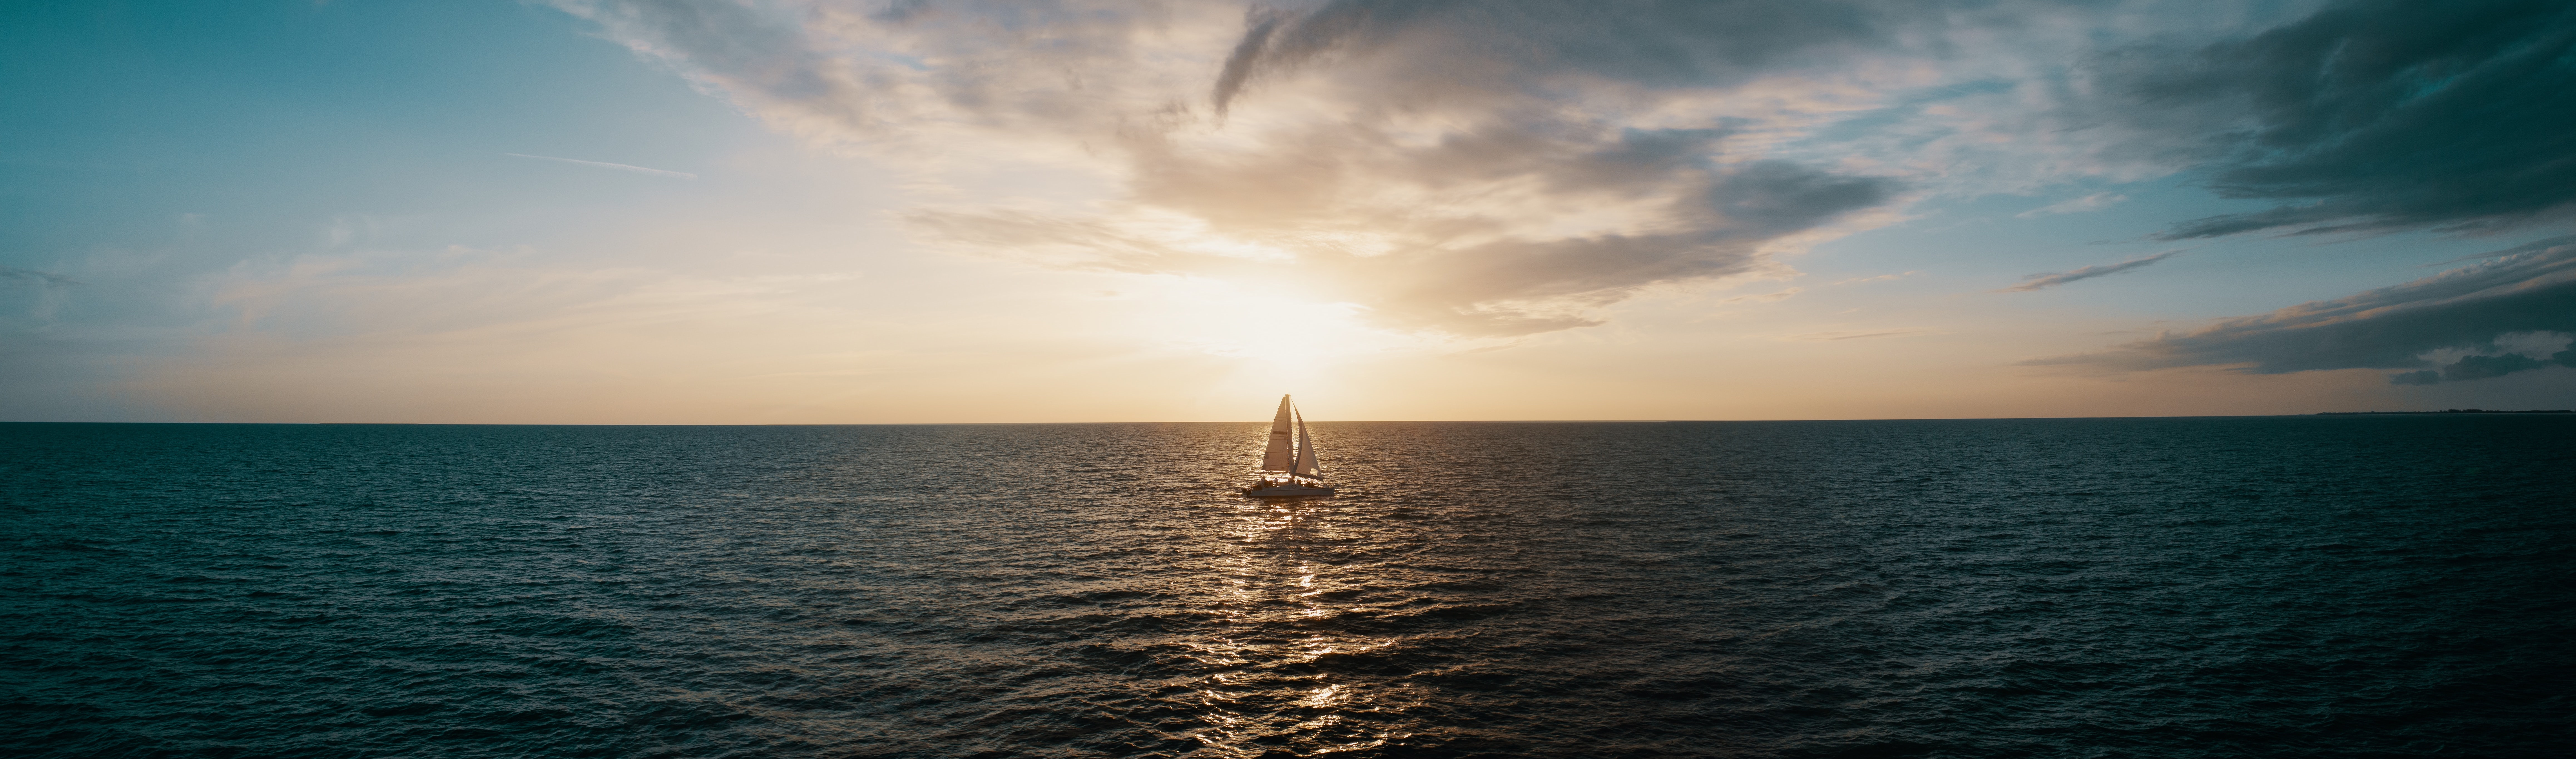 sailboat-drifting-on-open-water